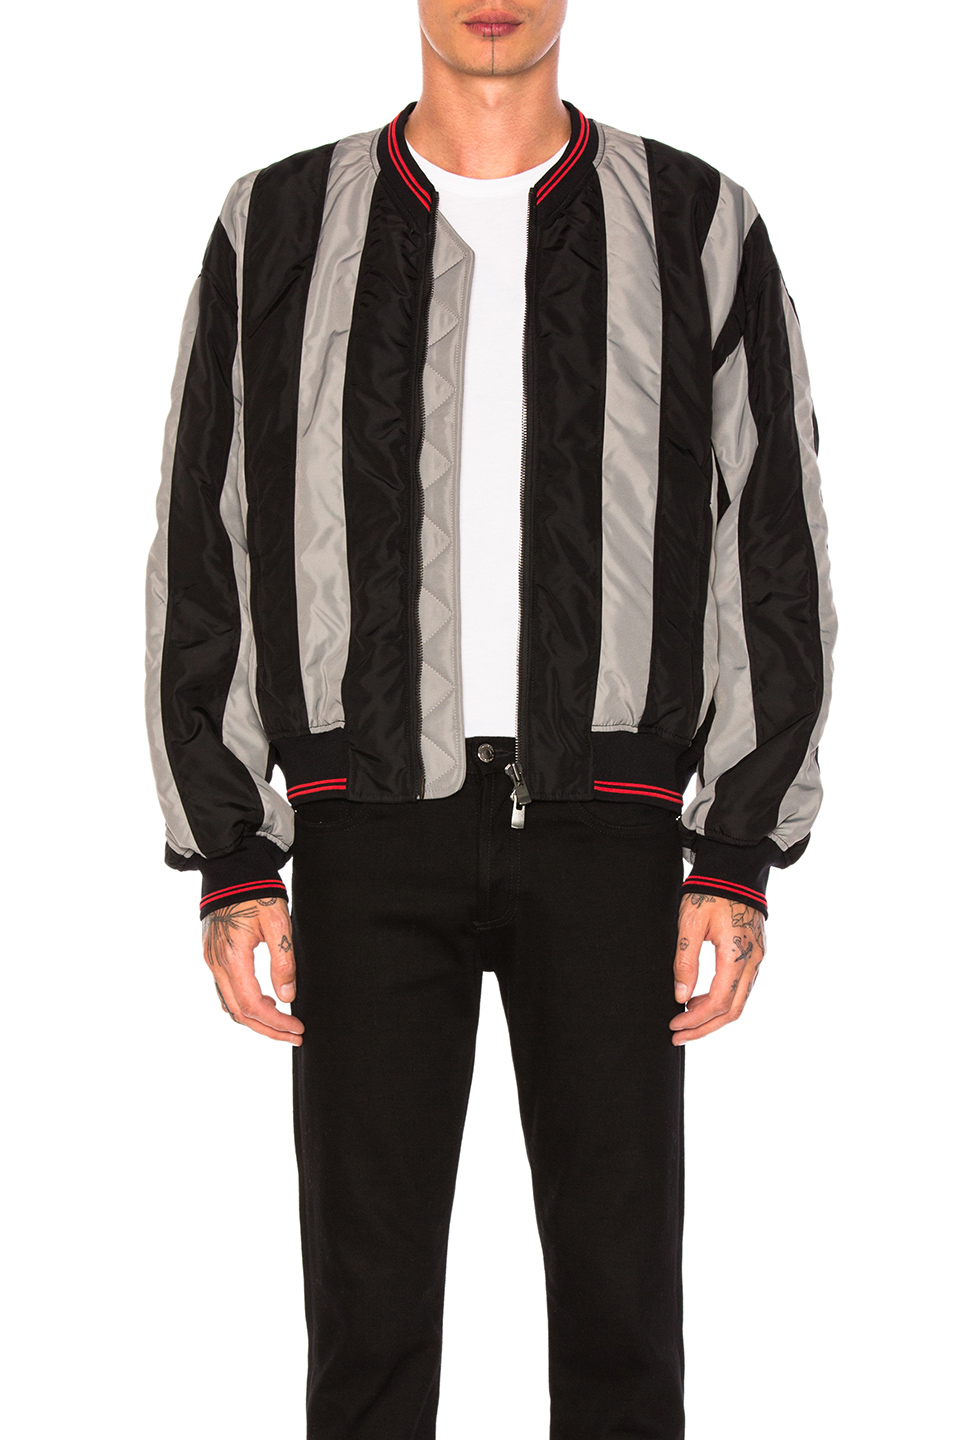 Y Project Striped Bomber Jacket in Black,Gray,Stripes